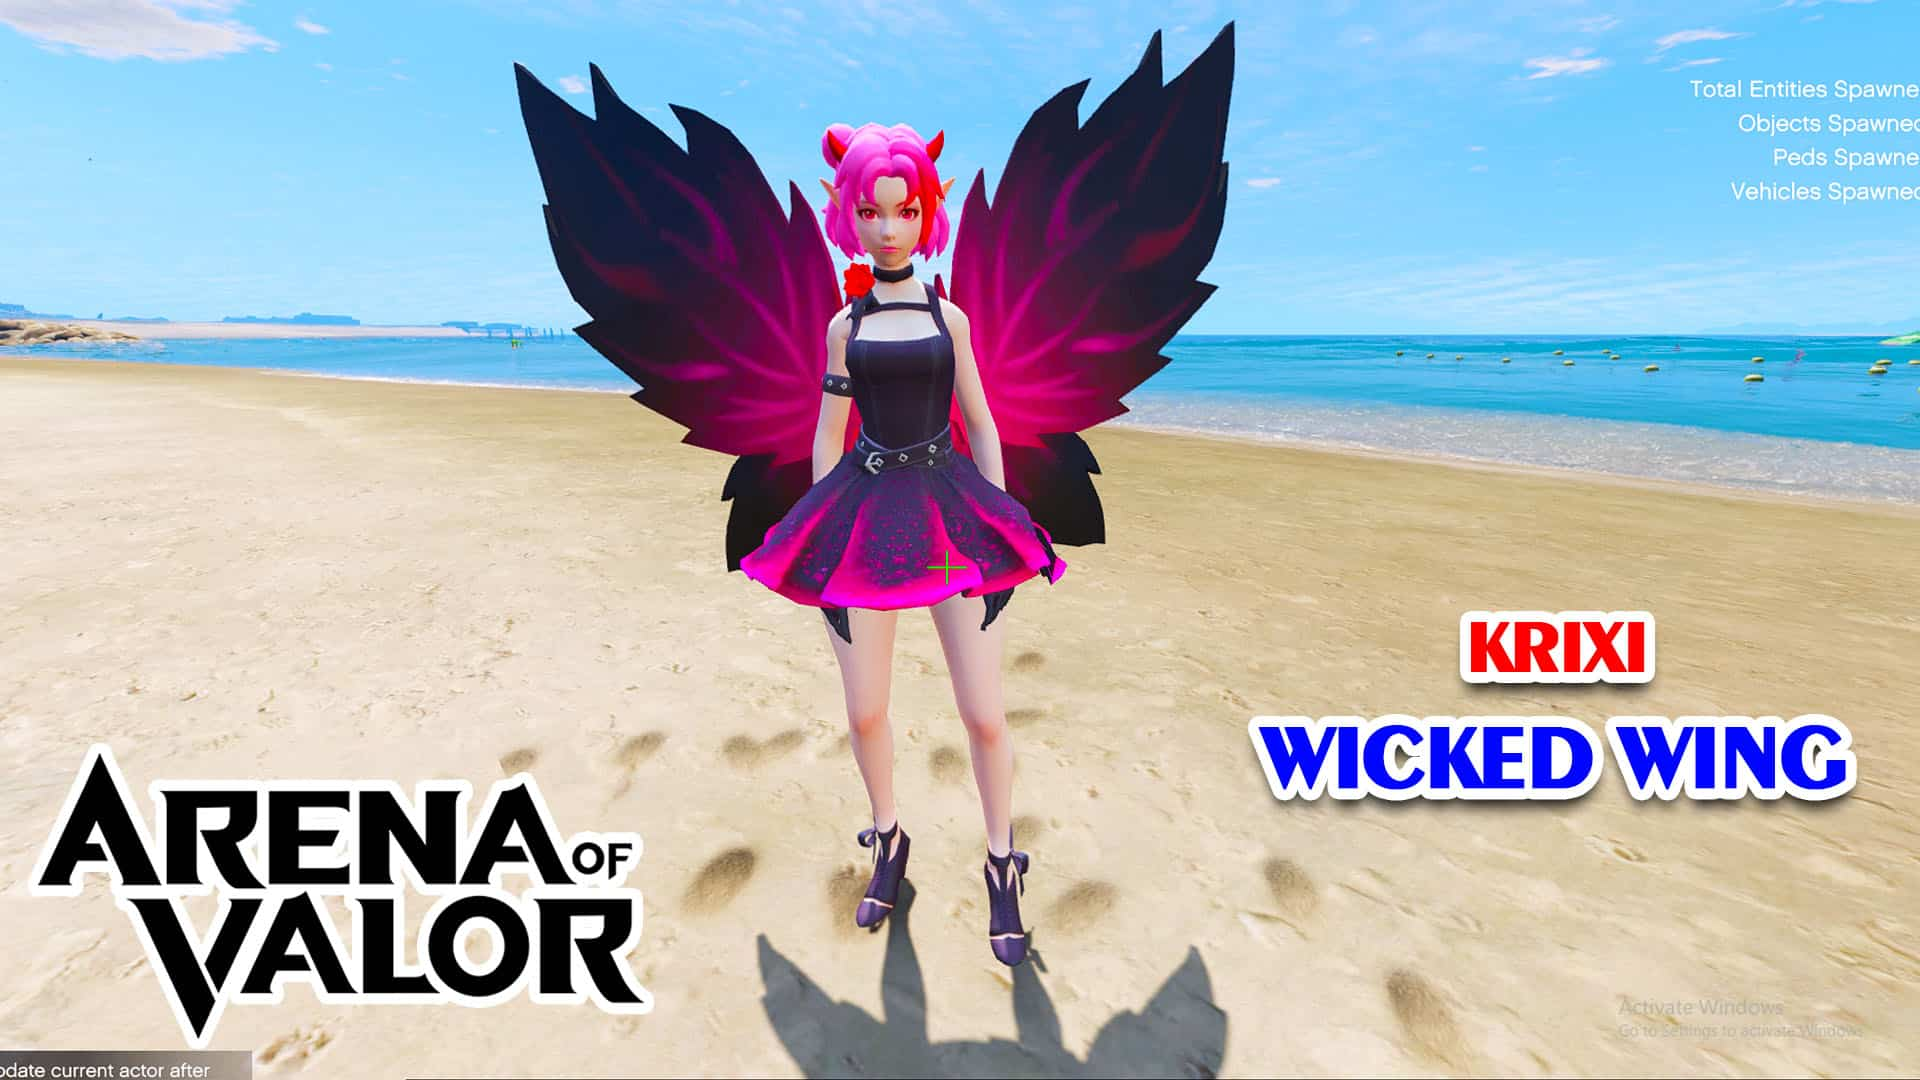 GTA 5 Mod Krixi Wicked Wings Arena of Valor